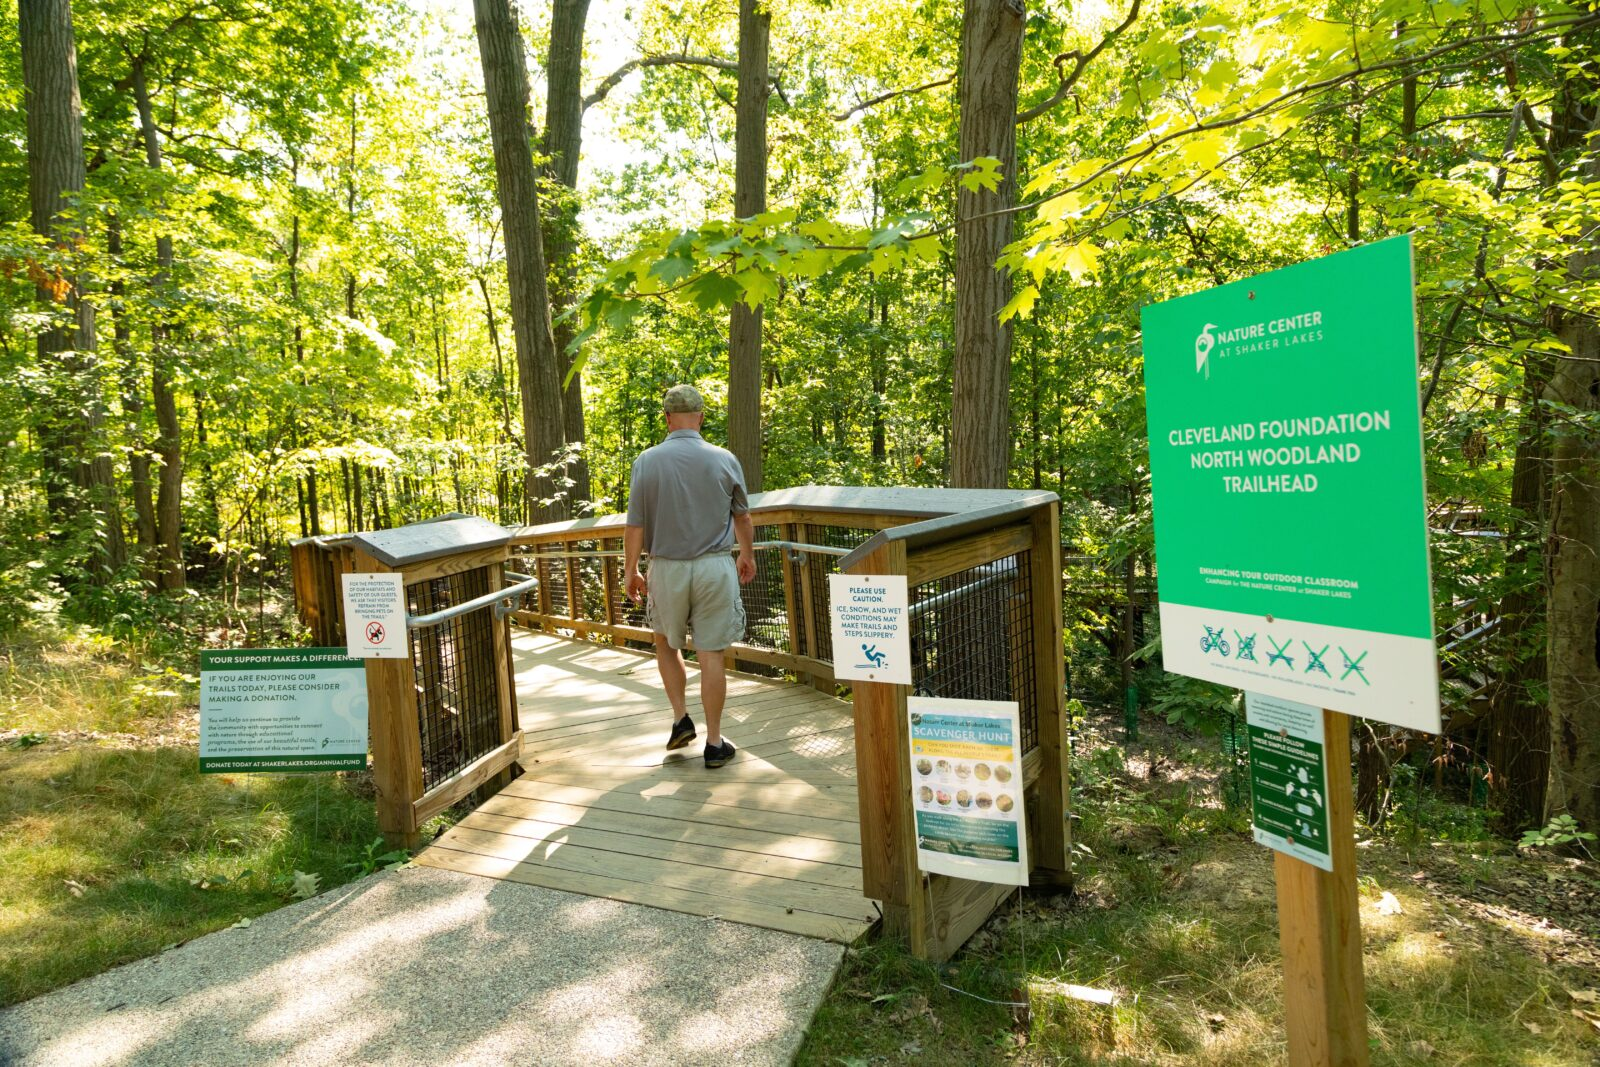 Nature Center at Shaker Lakes All People's Trail